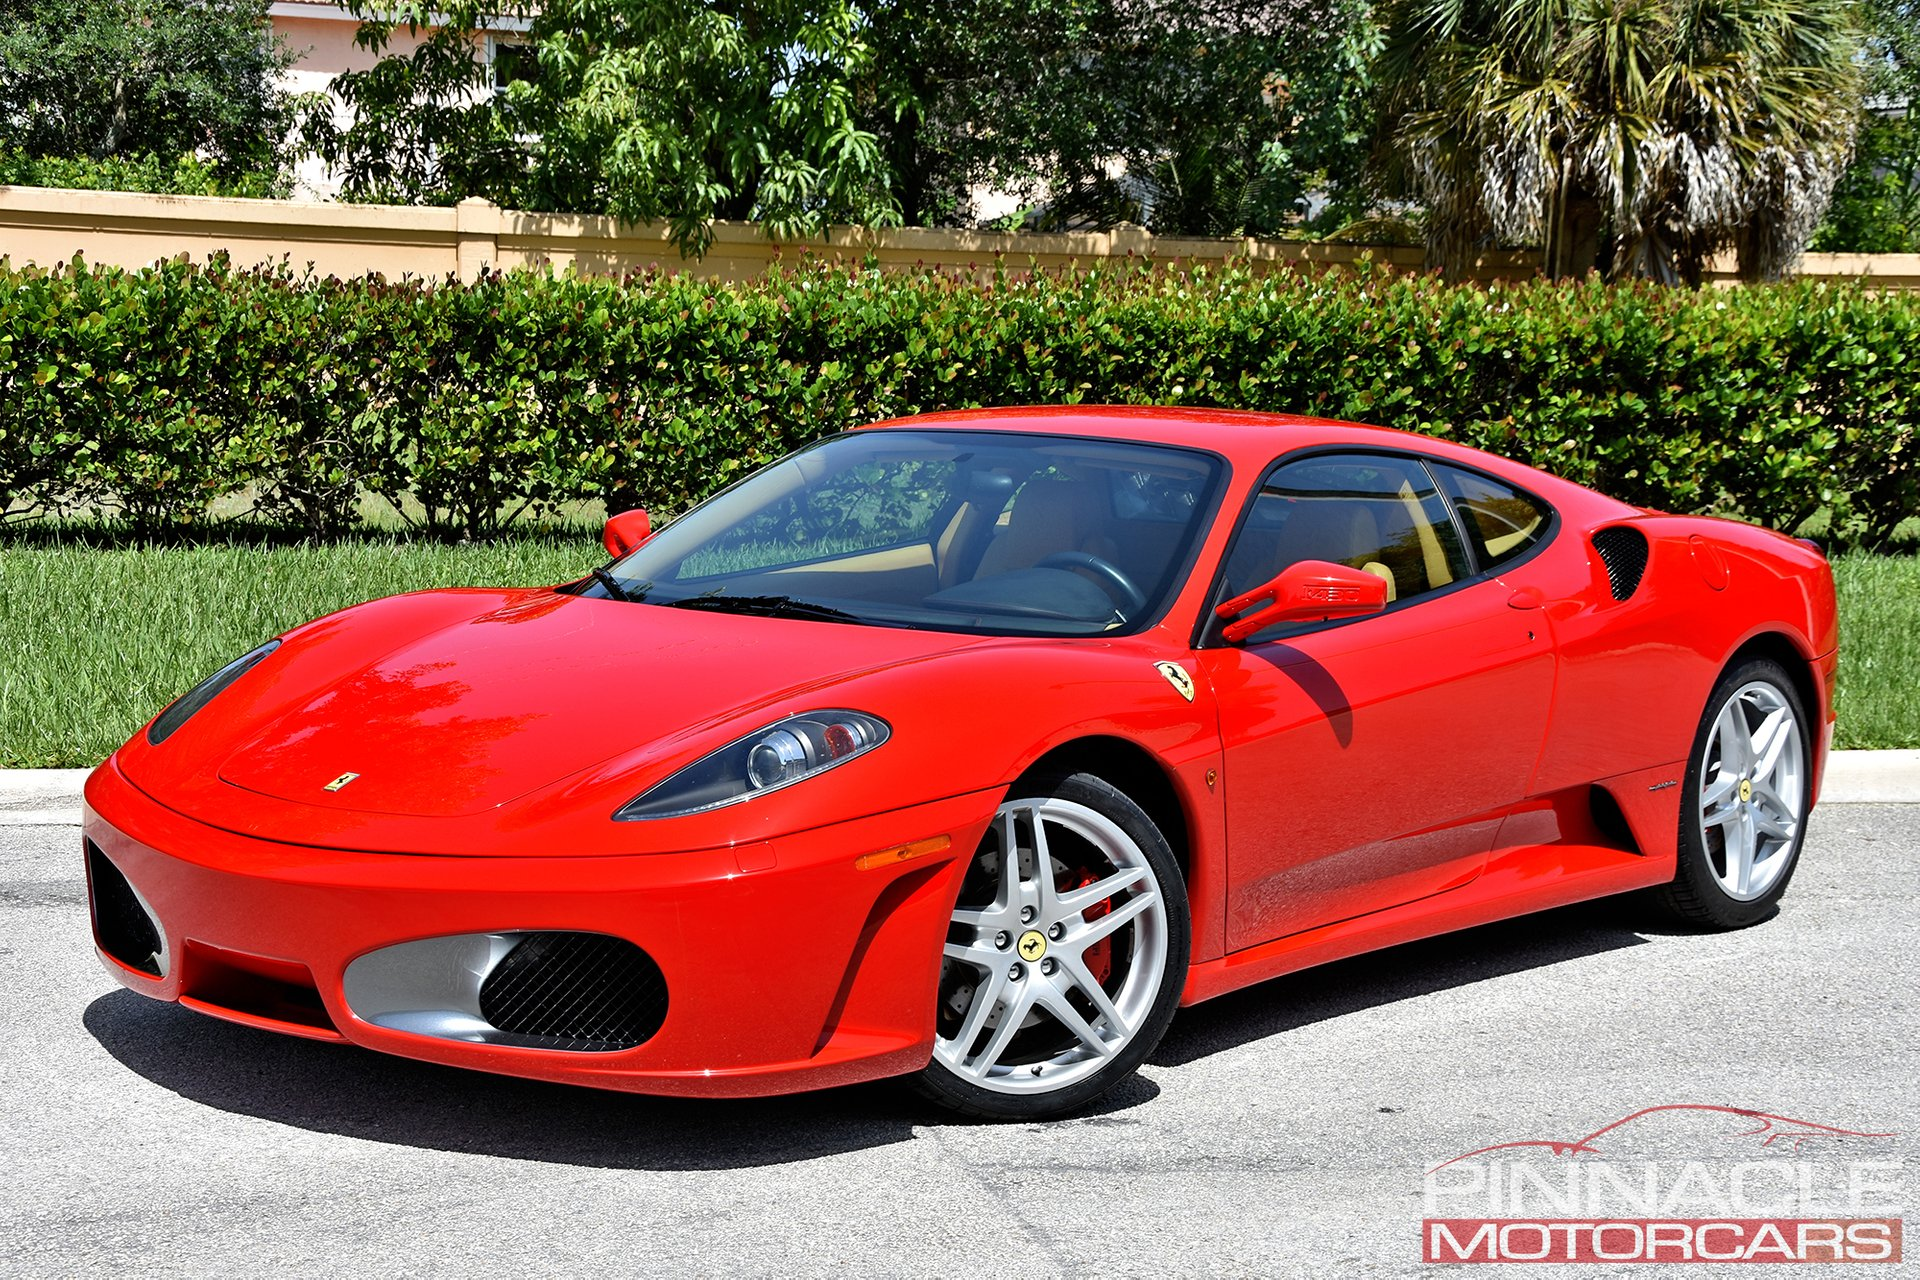 2005 Ferrari 430 Pinnacle Motorcars